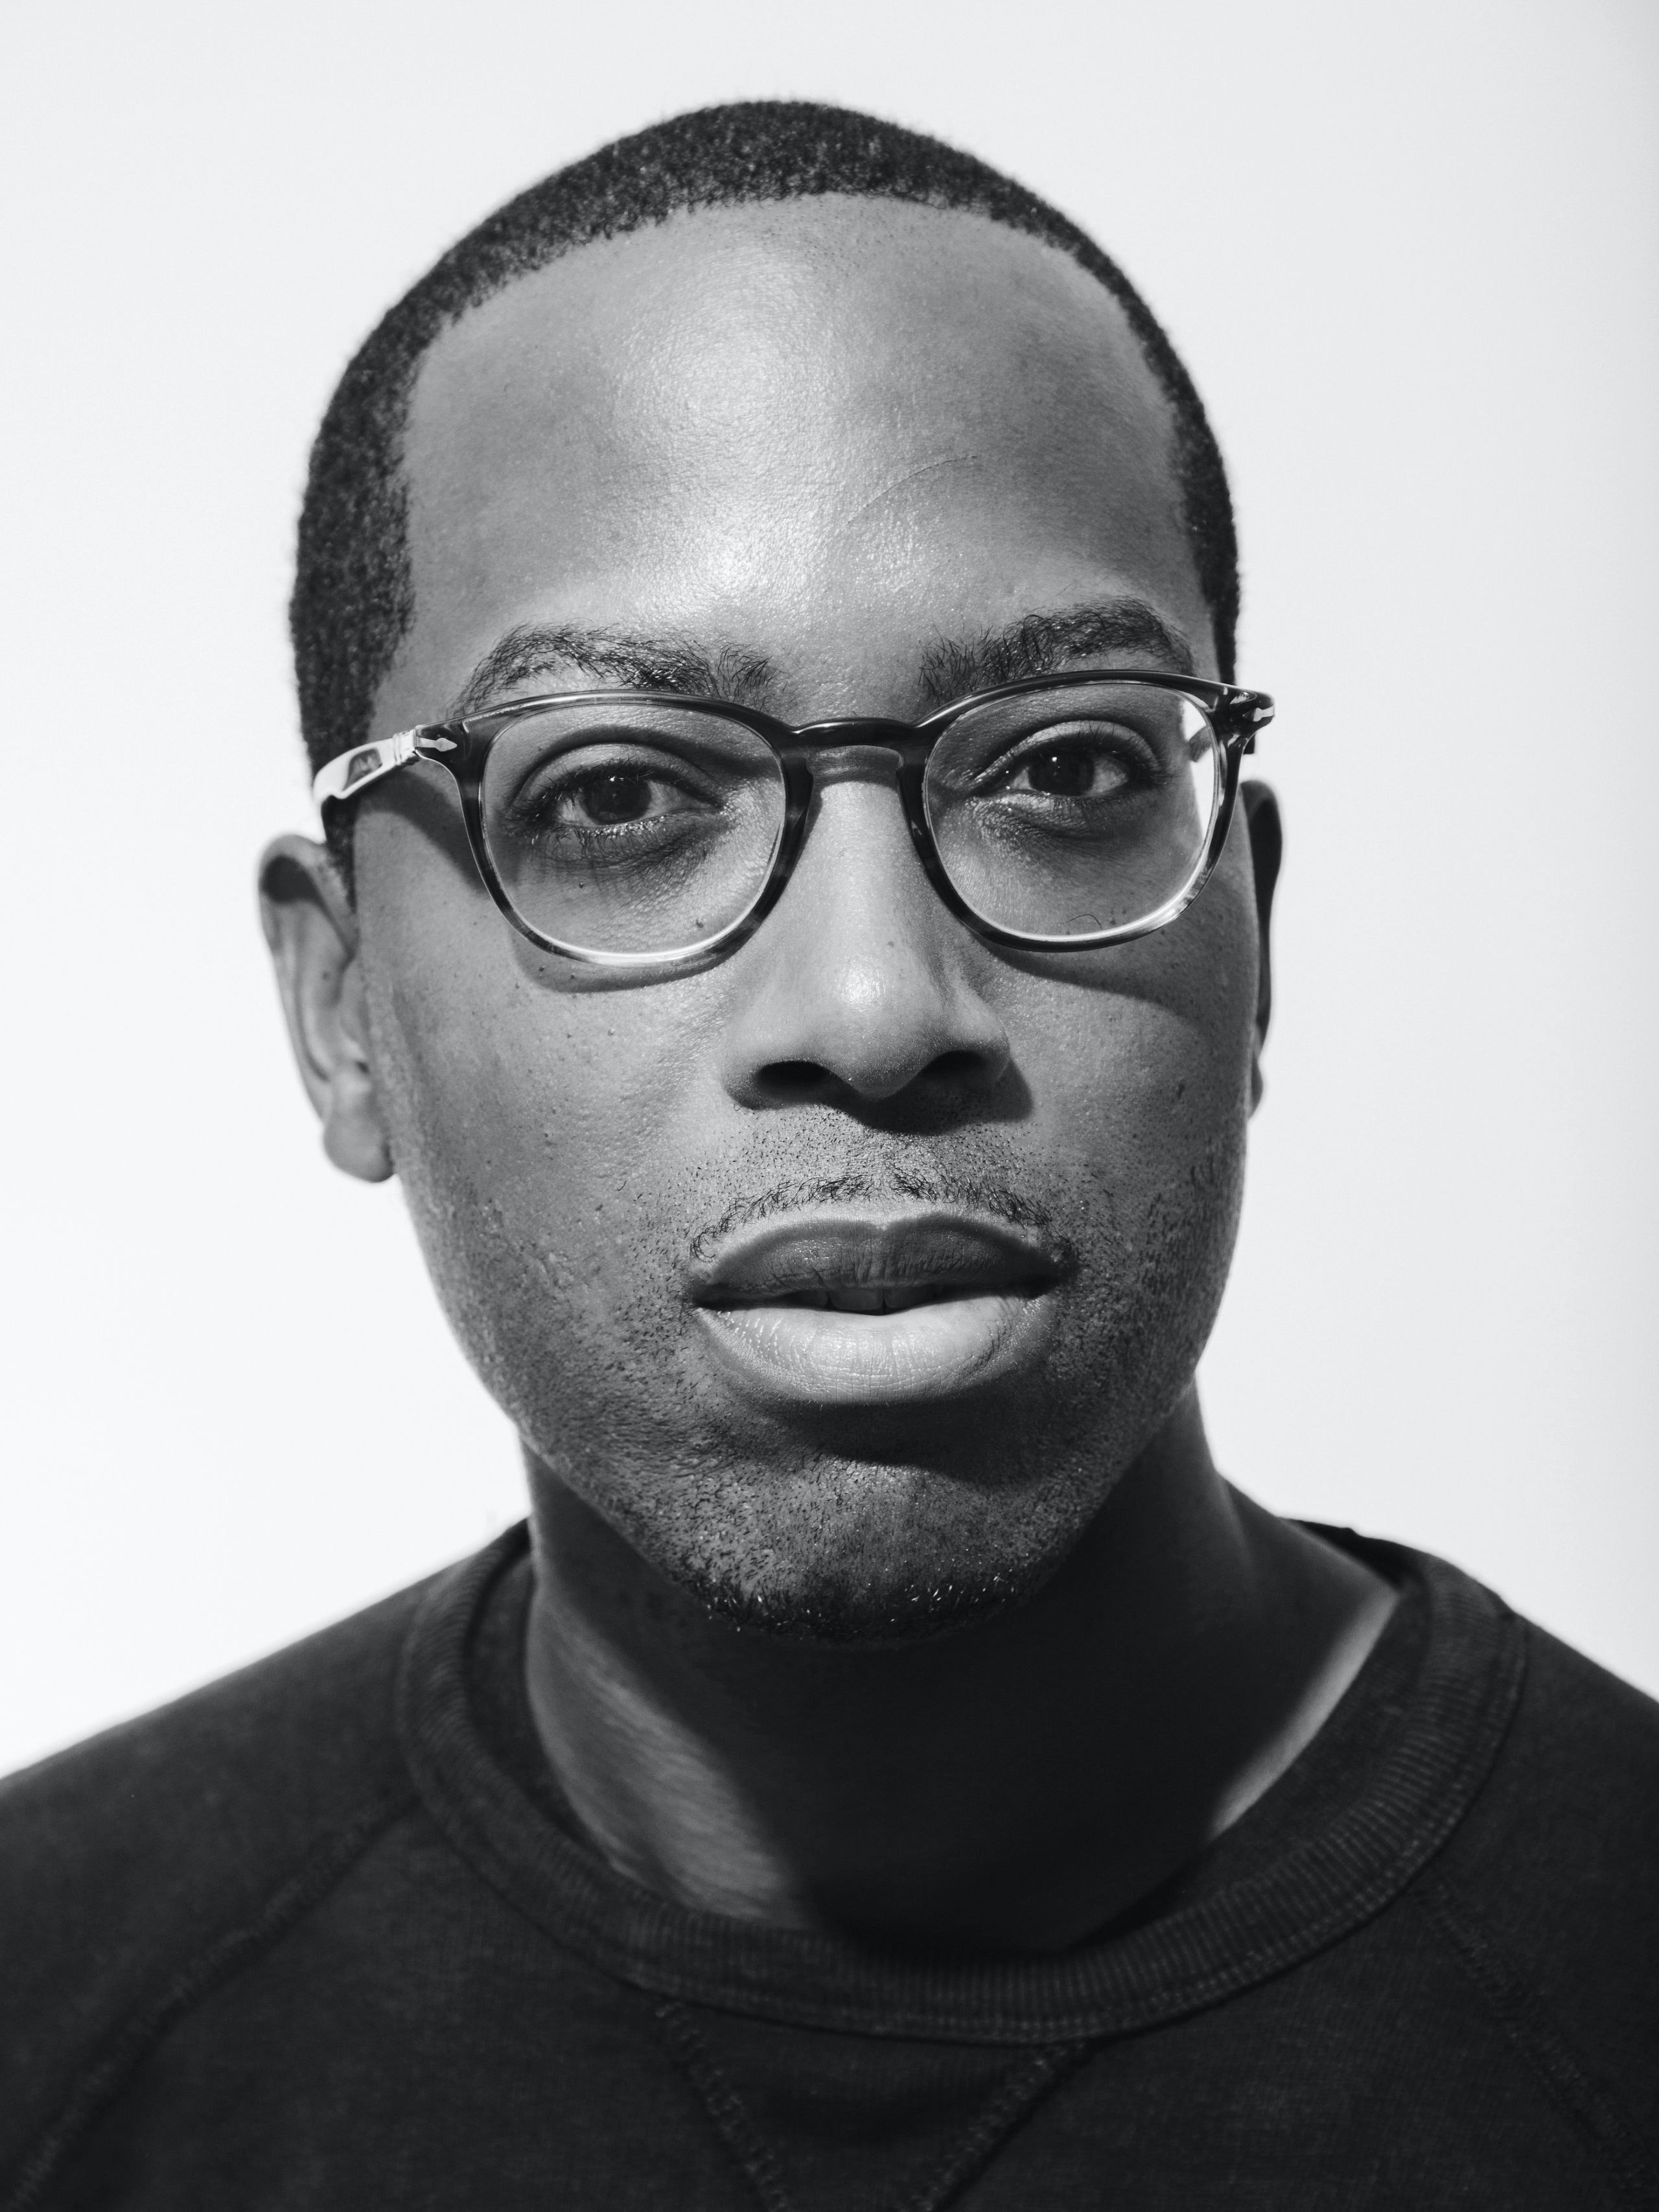 UNDATED -- BC-NYT-CORNER-OFFICE-TRISTAN-WALKER-PROCTER-GAMBLE-ART-NYTSF — Tristan Walker of Walker & Company. (CREDIT: Matt Edge/The New York Times)  --  ONLY FOR USE WITH ARTICLE SLUGGED -- BC-NYT-CORNER-OFFICE-TRISTAN-WALKER-PROCTER-GAMBLE-ART-NYTSF -- OTHER USE PROHIBITED.